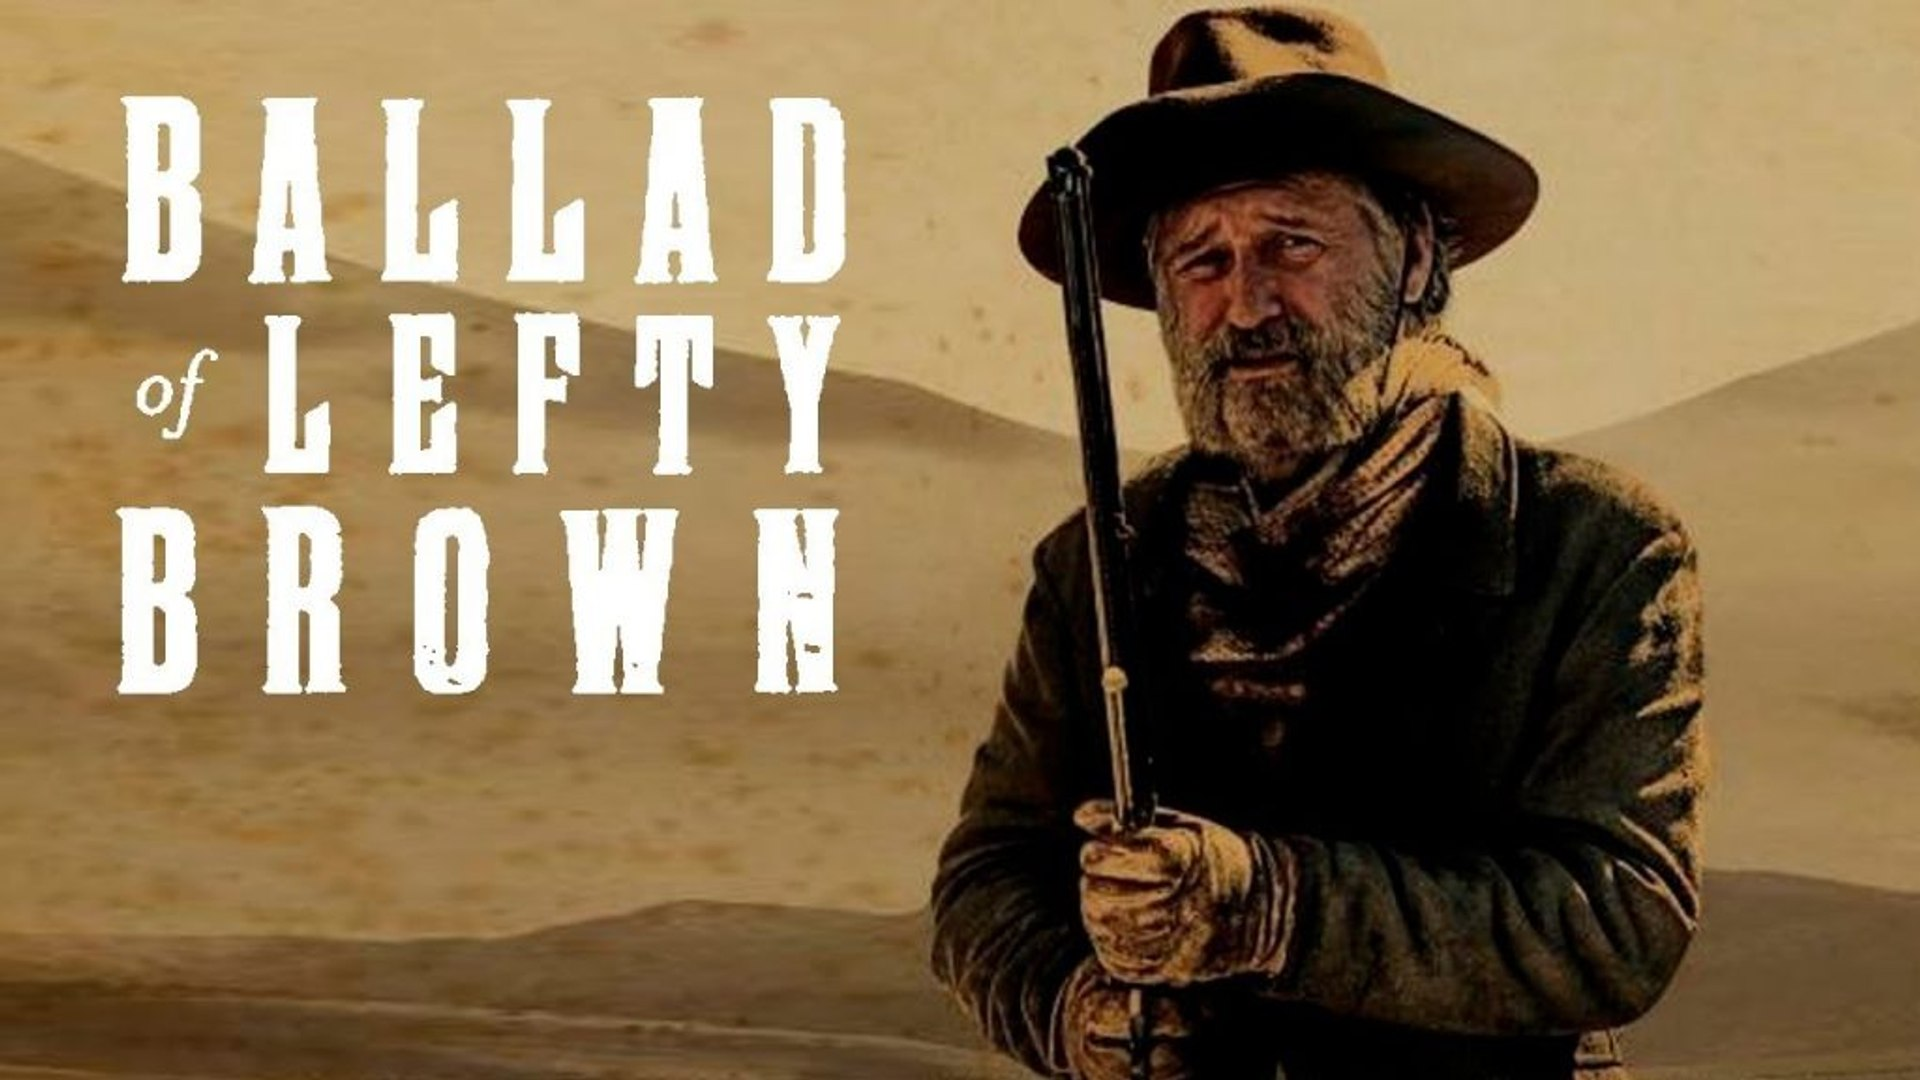 The Ballad Of Lefty Brown Trailer 12/15/2017